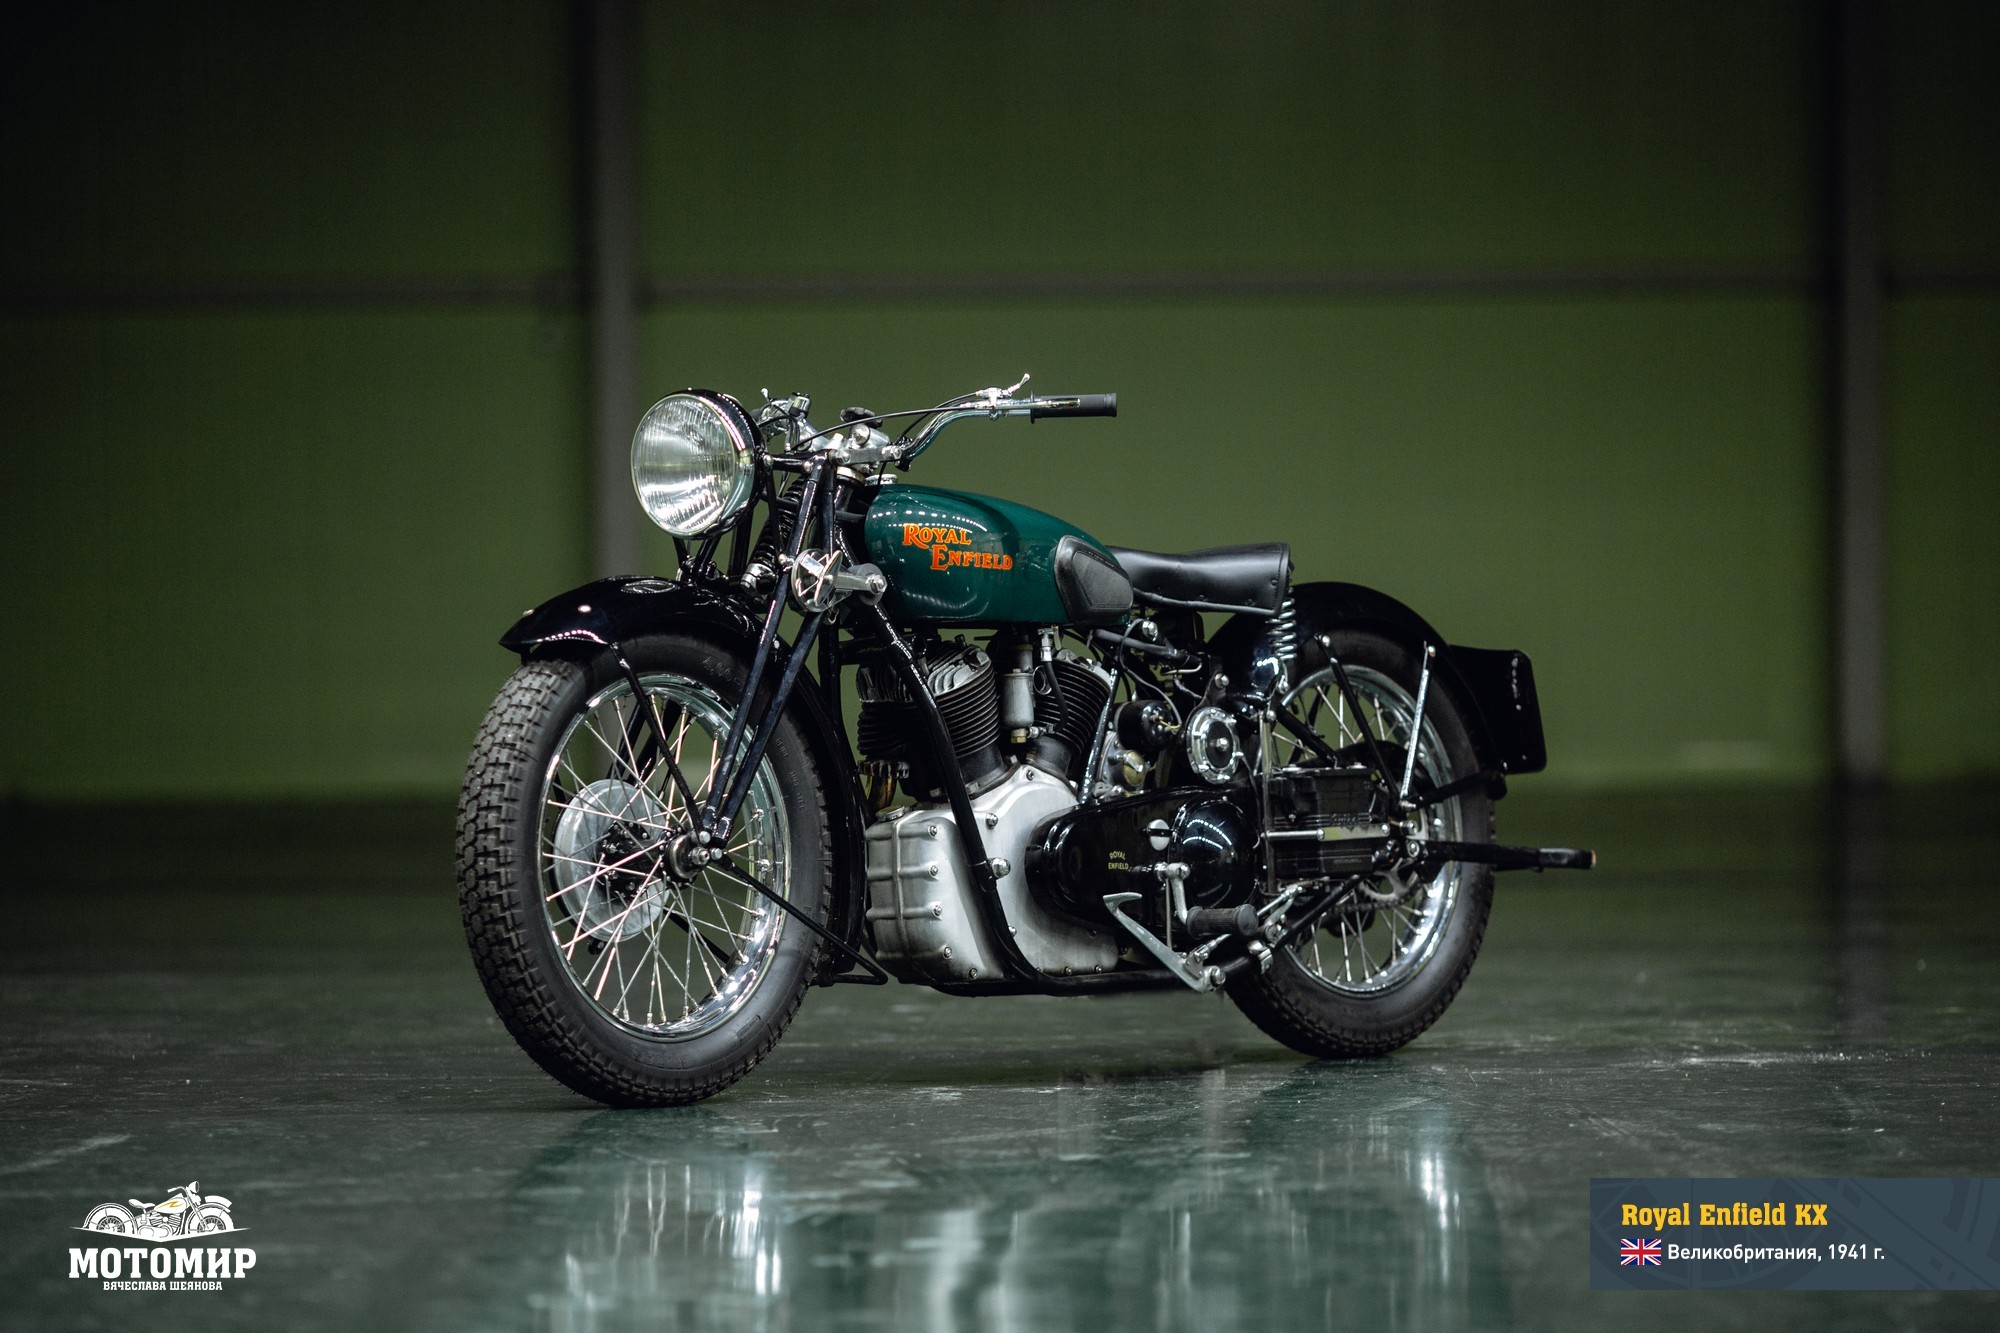 royal-enfield-kx-201601-web-08